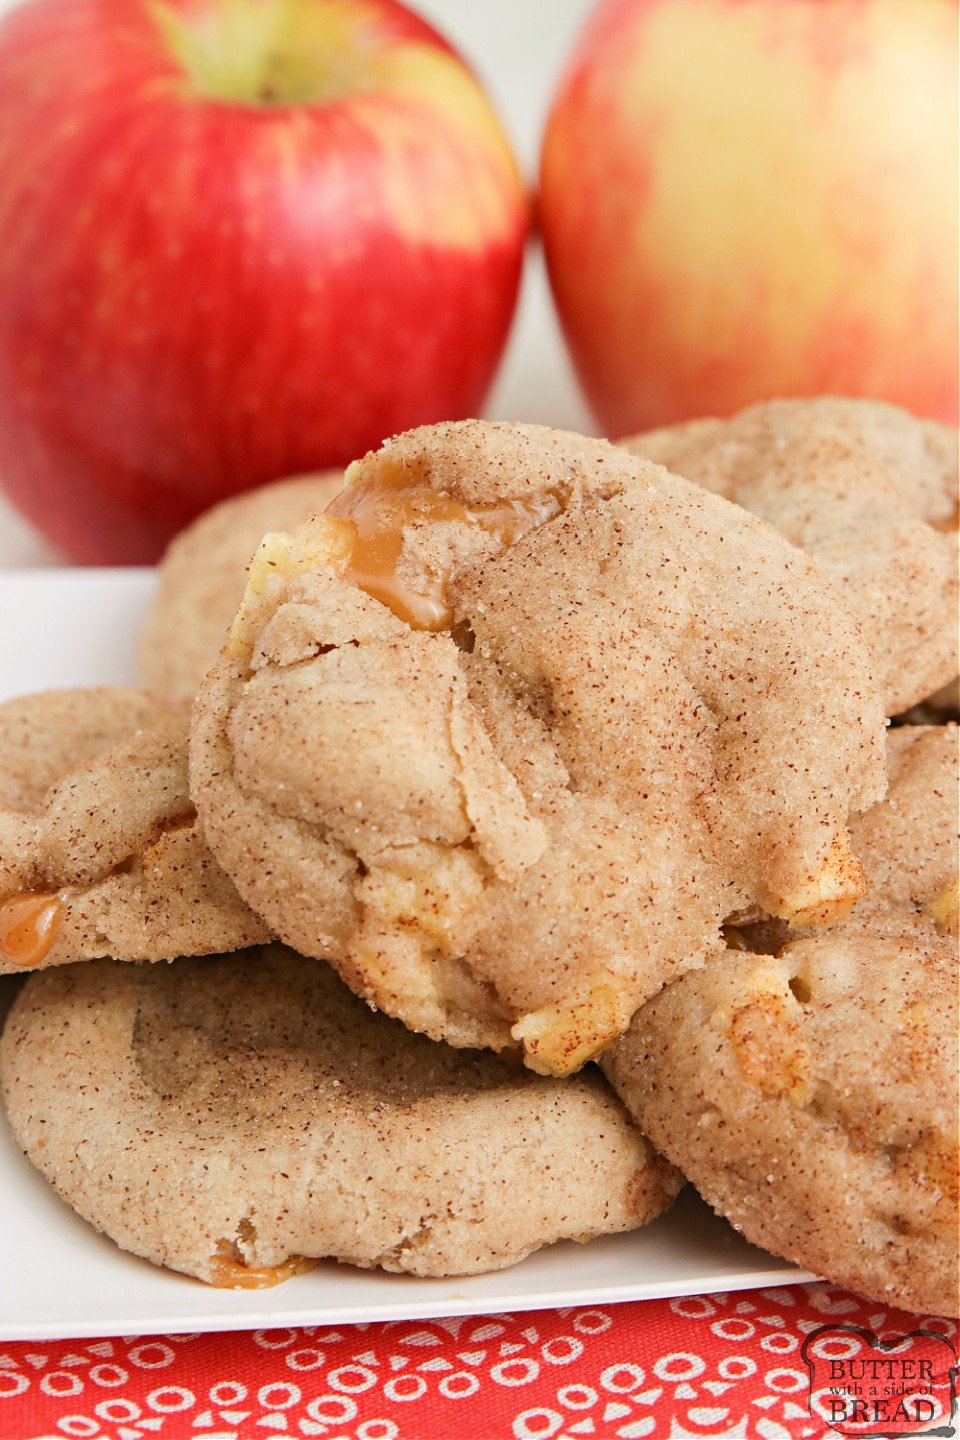 Caramel Apple Snickerdoodles combine the taste of your favorite cinnamon sugar cookie with the deliciousness of chewy caramel and fresh apples too! Soft, chewy and absolutely delicious!